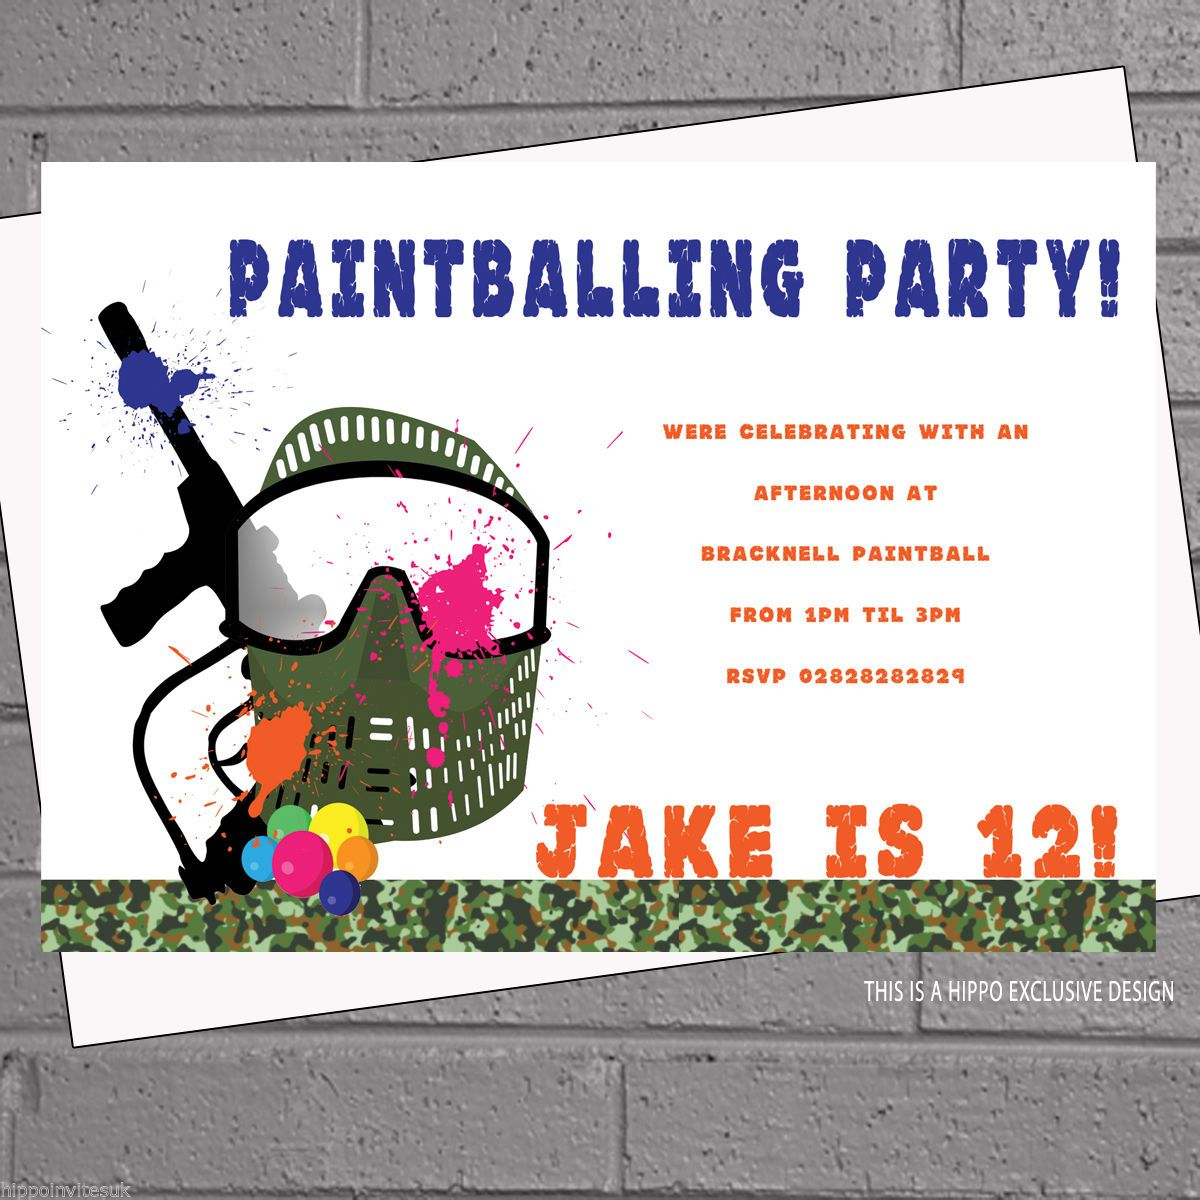 Paintballing party #paintball birthday party #invites x 12 +envs ...